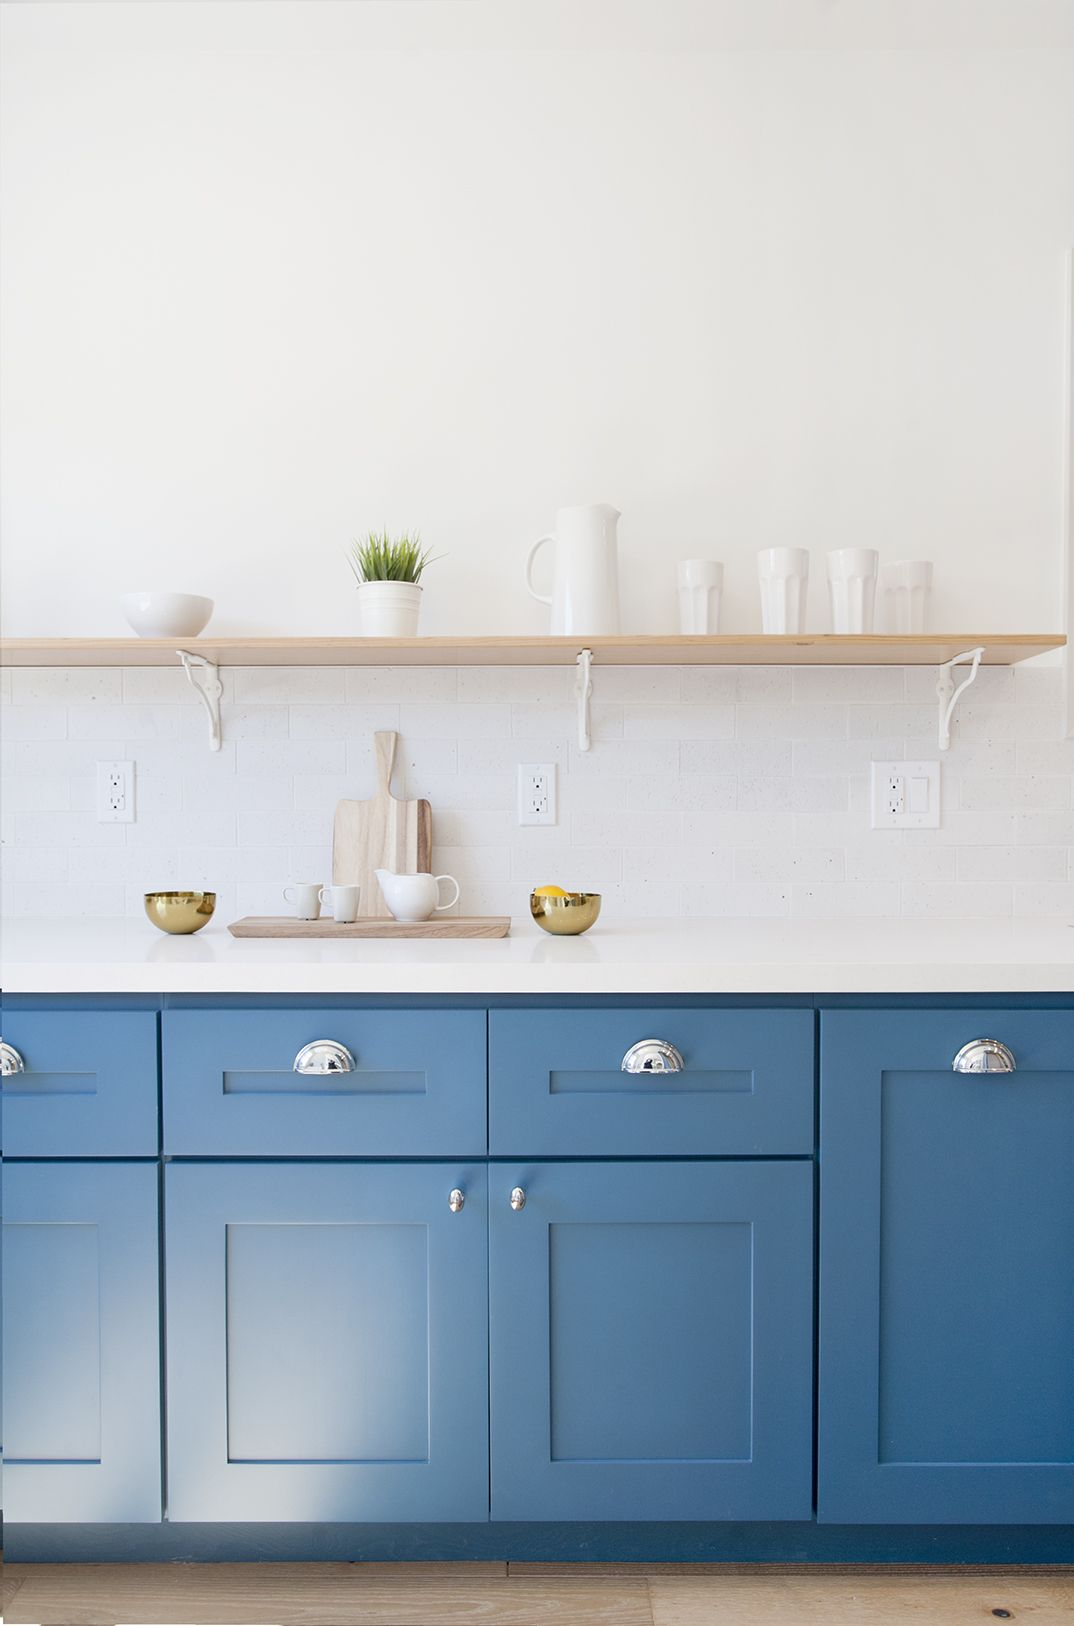 Custom Painted Kitchen Cabinets Painting Oak Cabinets Kitchen Cupboards Paint Oak Cabinets